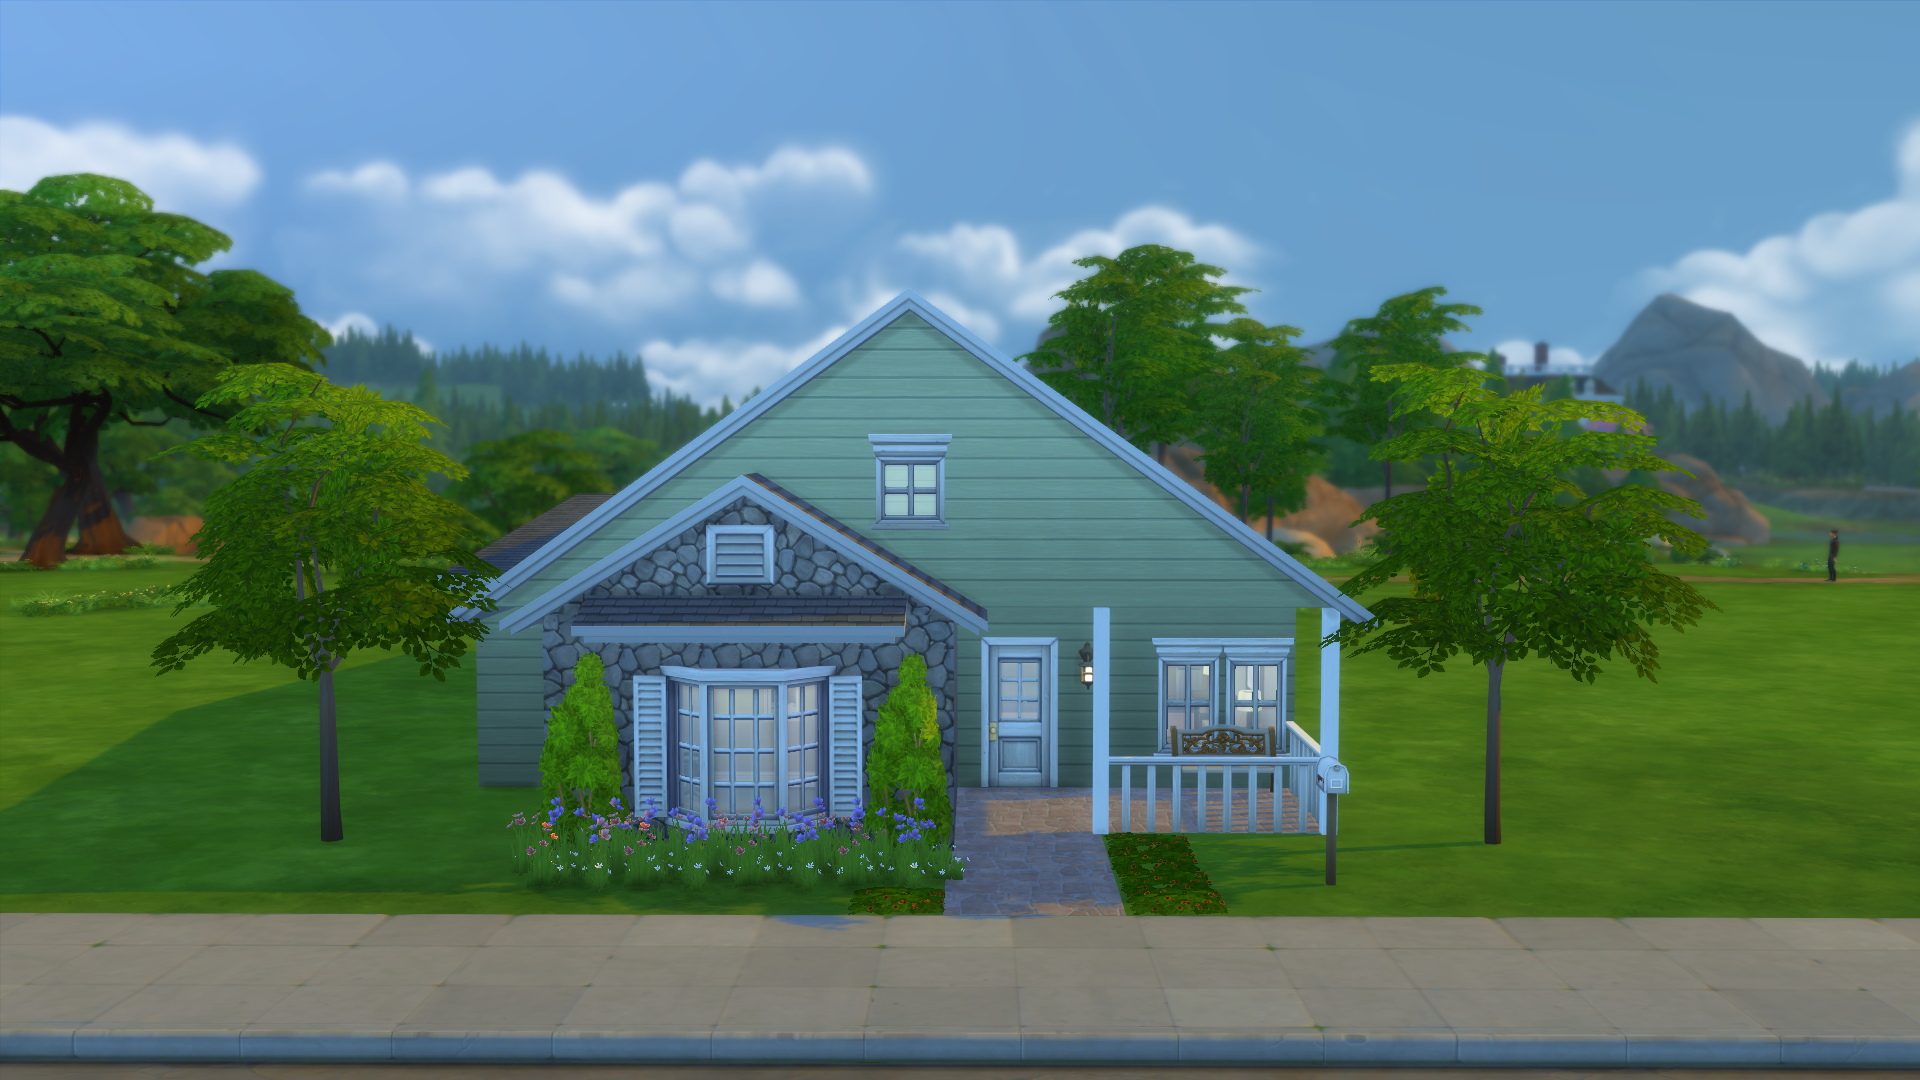 Building My House mystic's sims 4 house builds – trying rory's build challenge